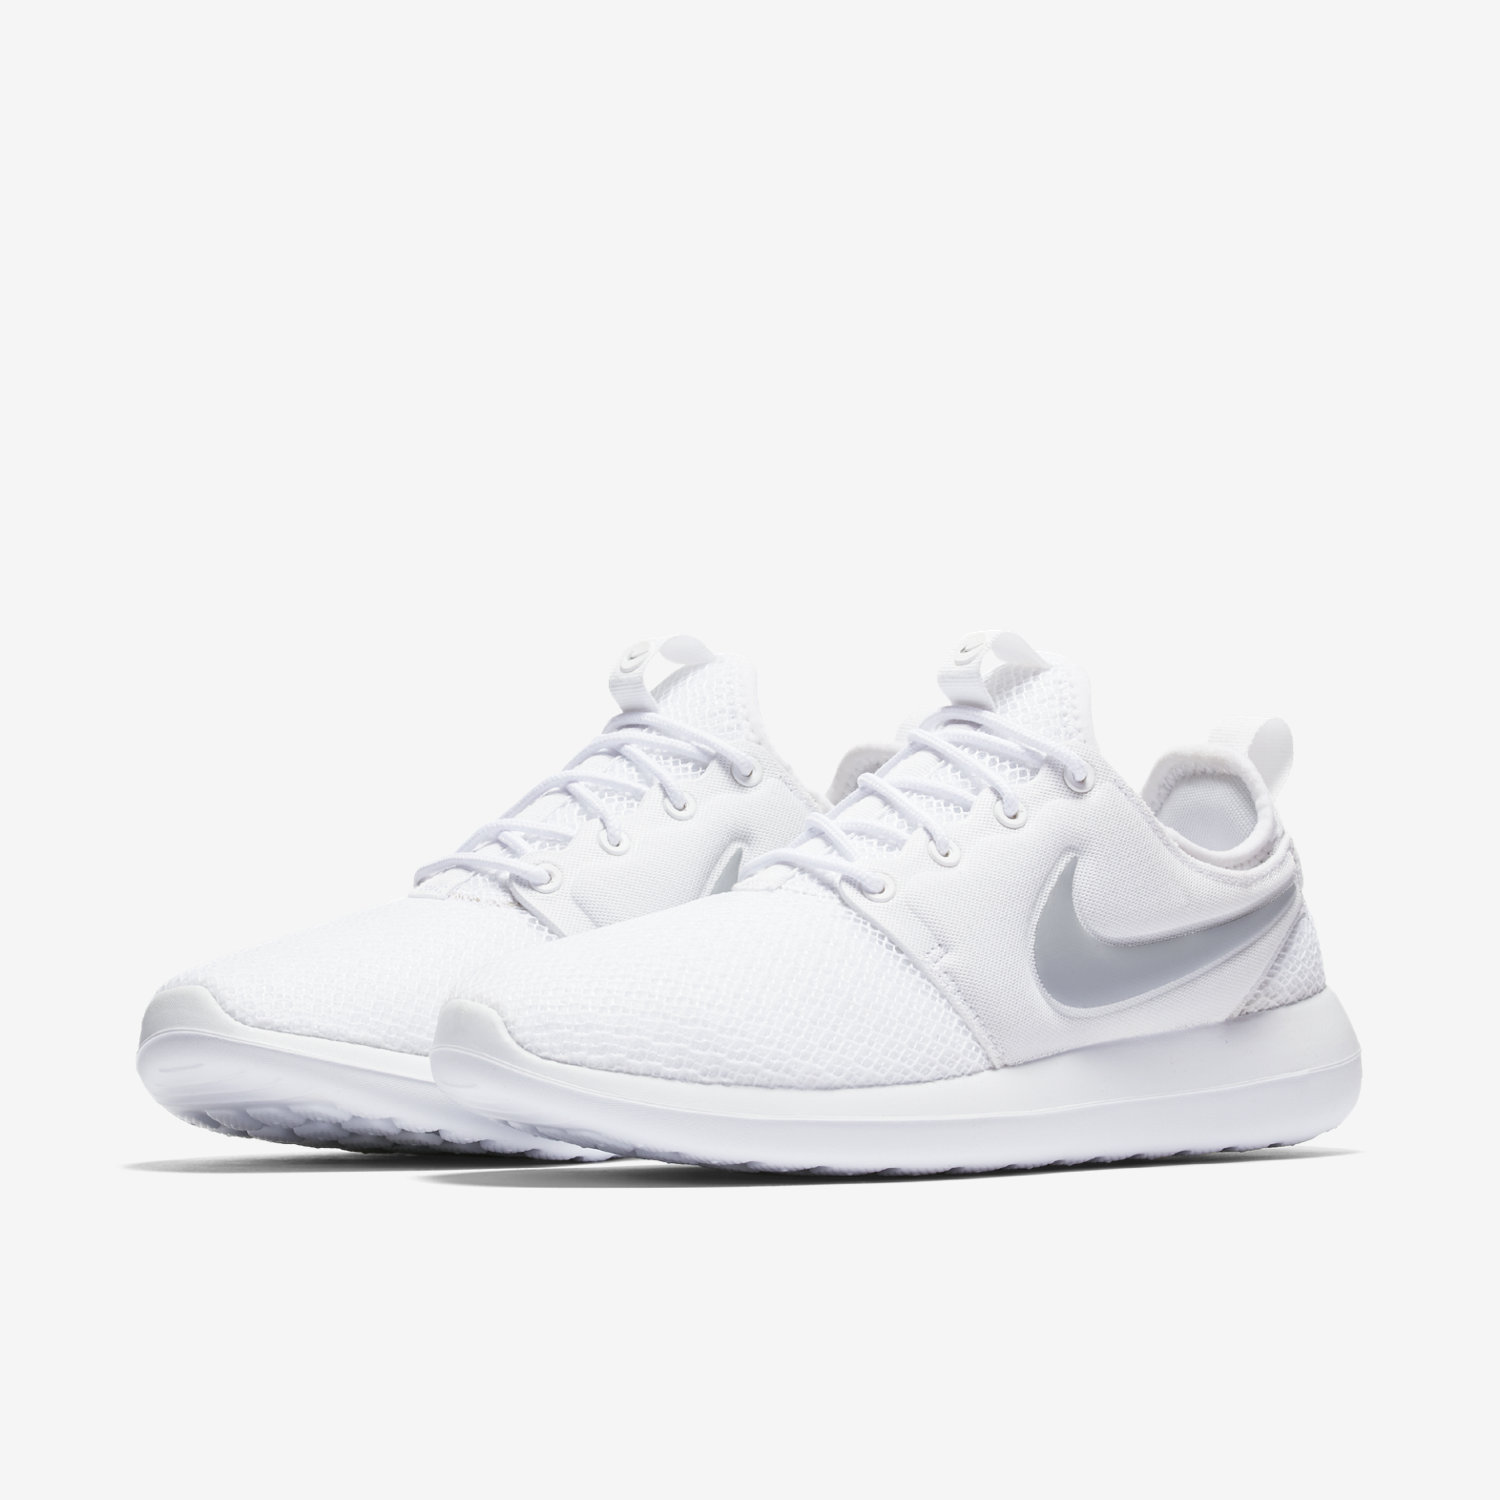 womens white and grey nike shoes outright